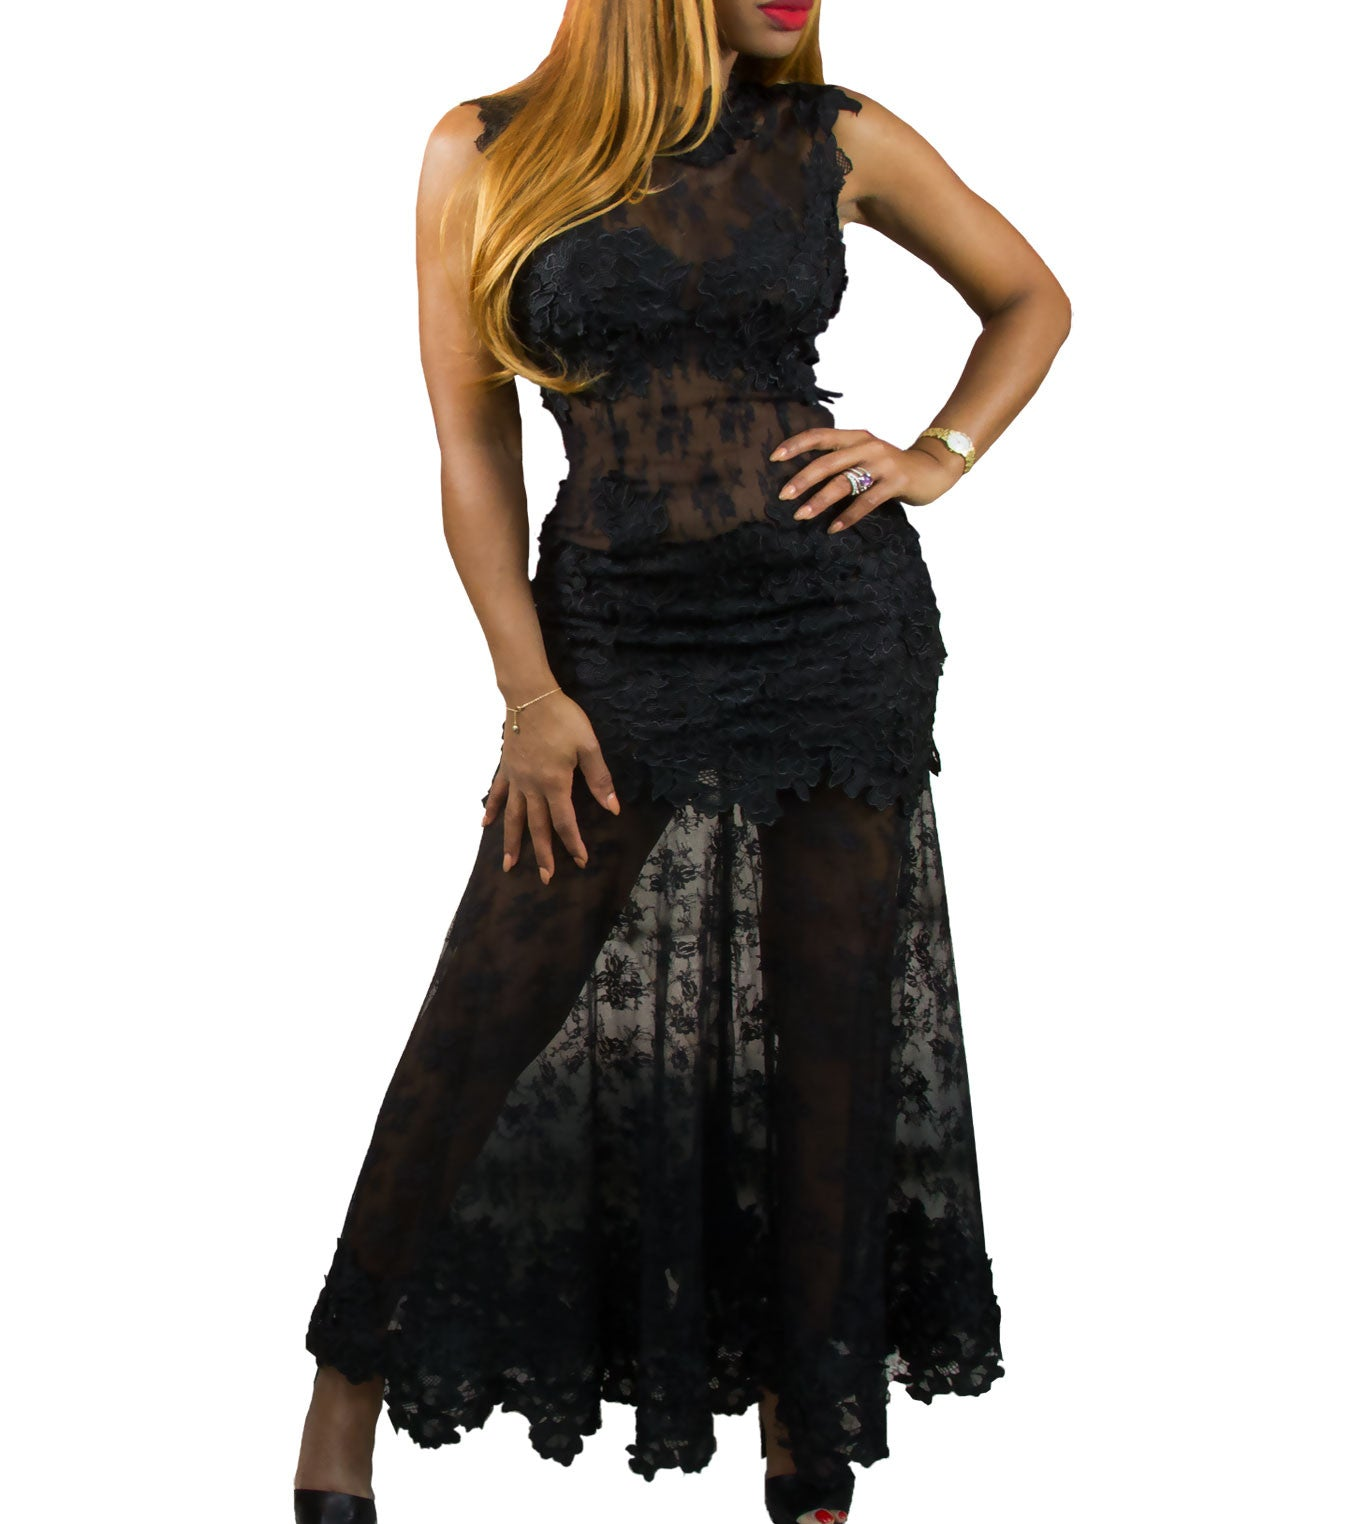 0499a0d177b5 Black Sheer Lace Gown